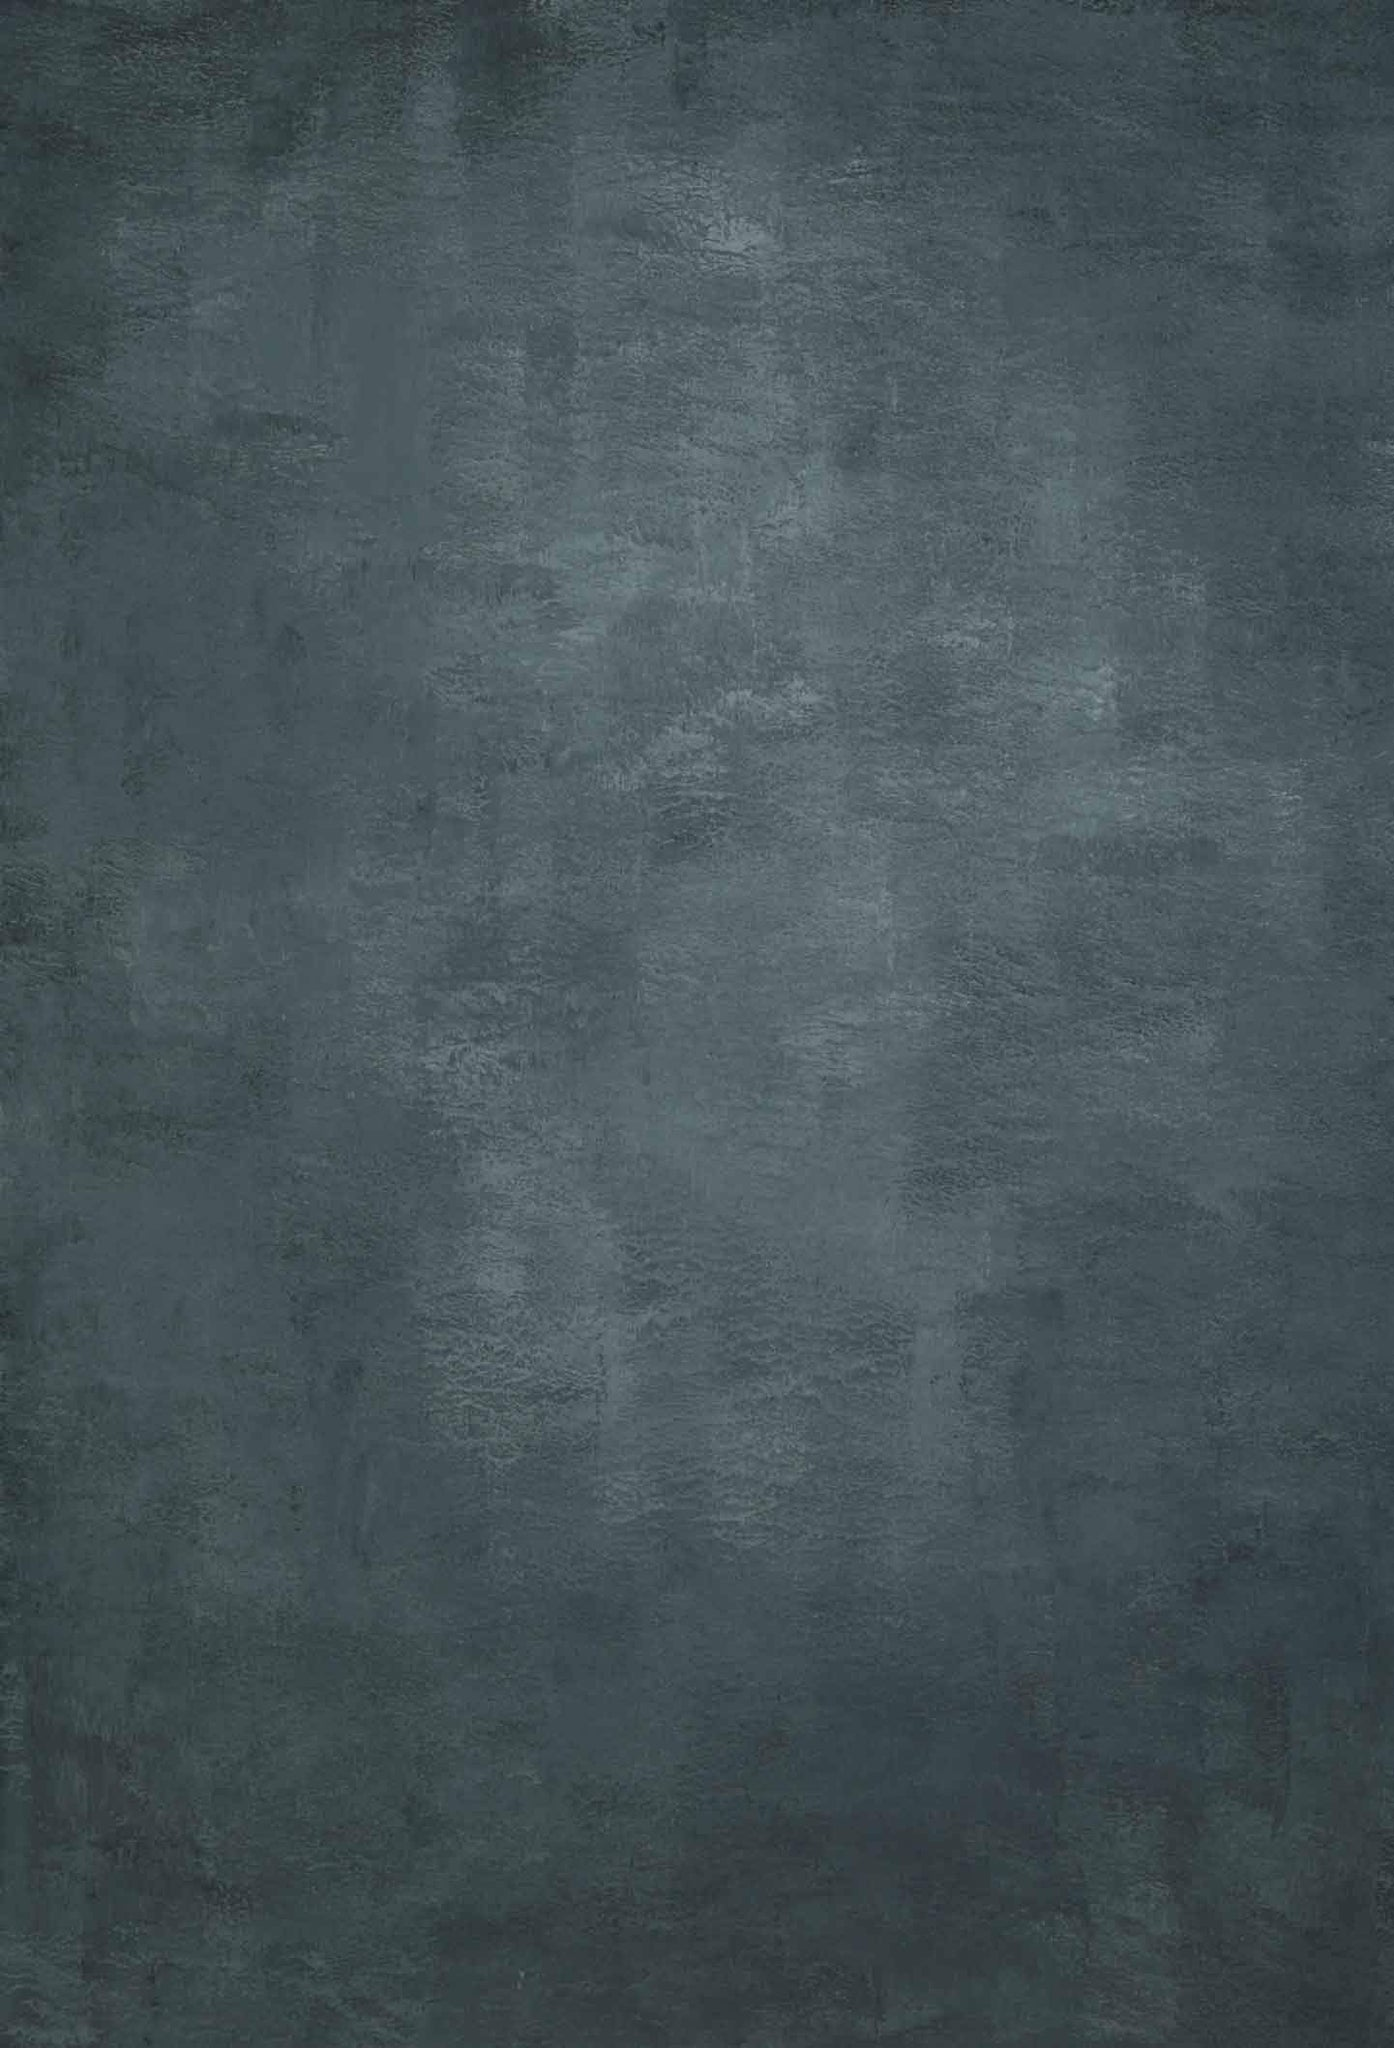 Load image into Gallery viewer, Katebackdrop£ºKate Abstract Texture Spray Painted Backdrop